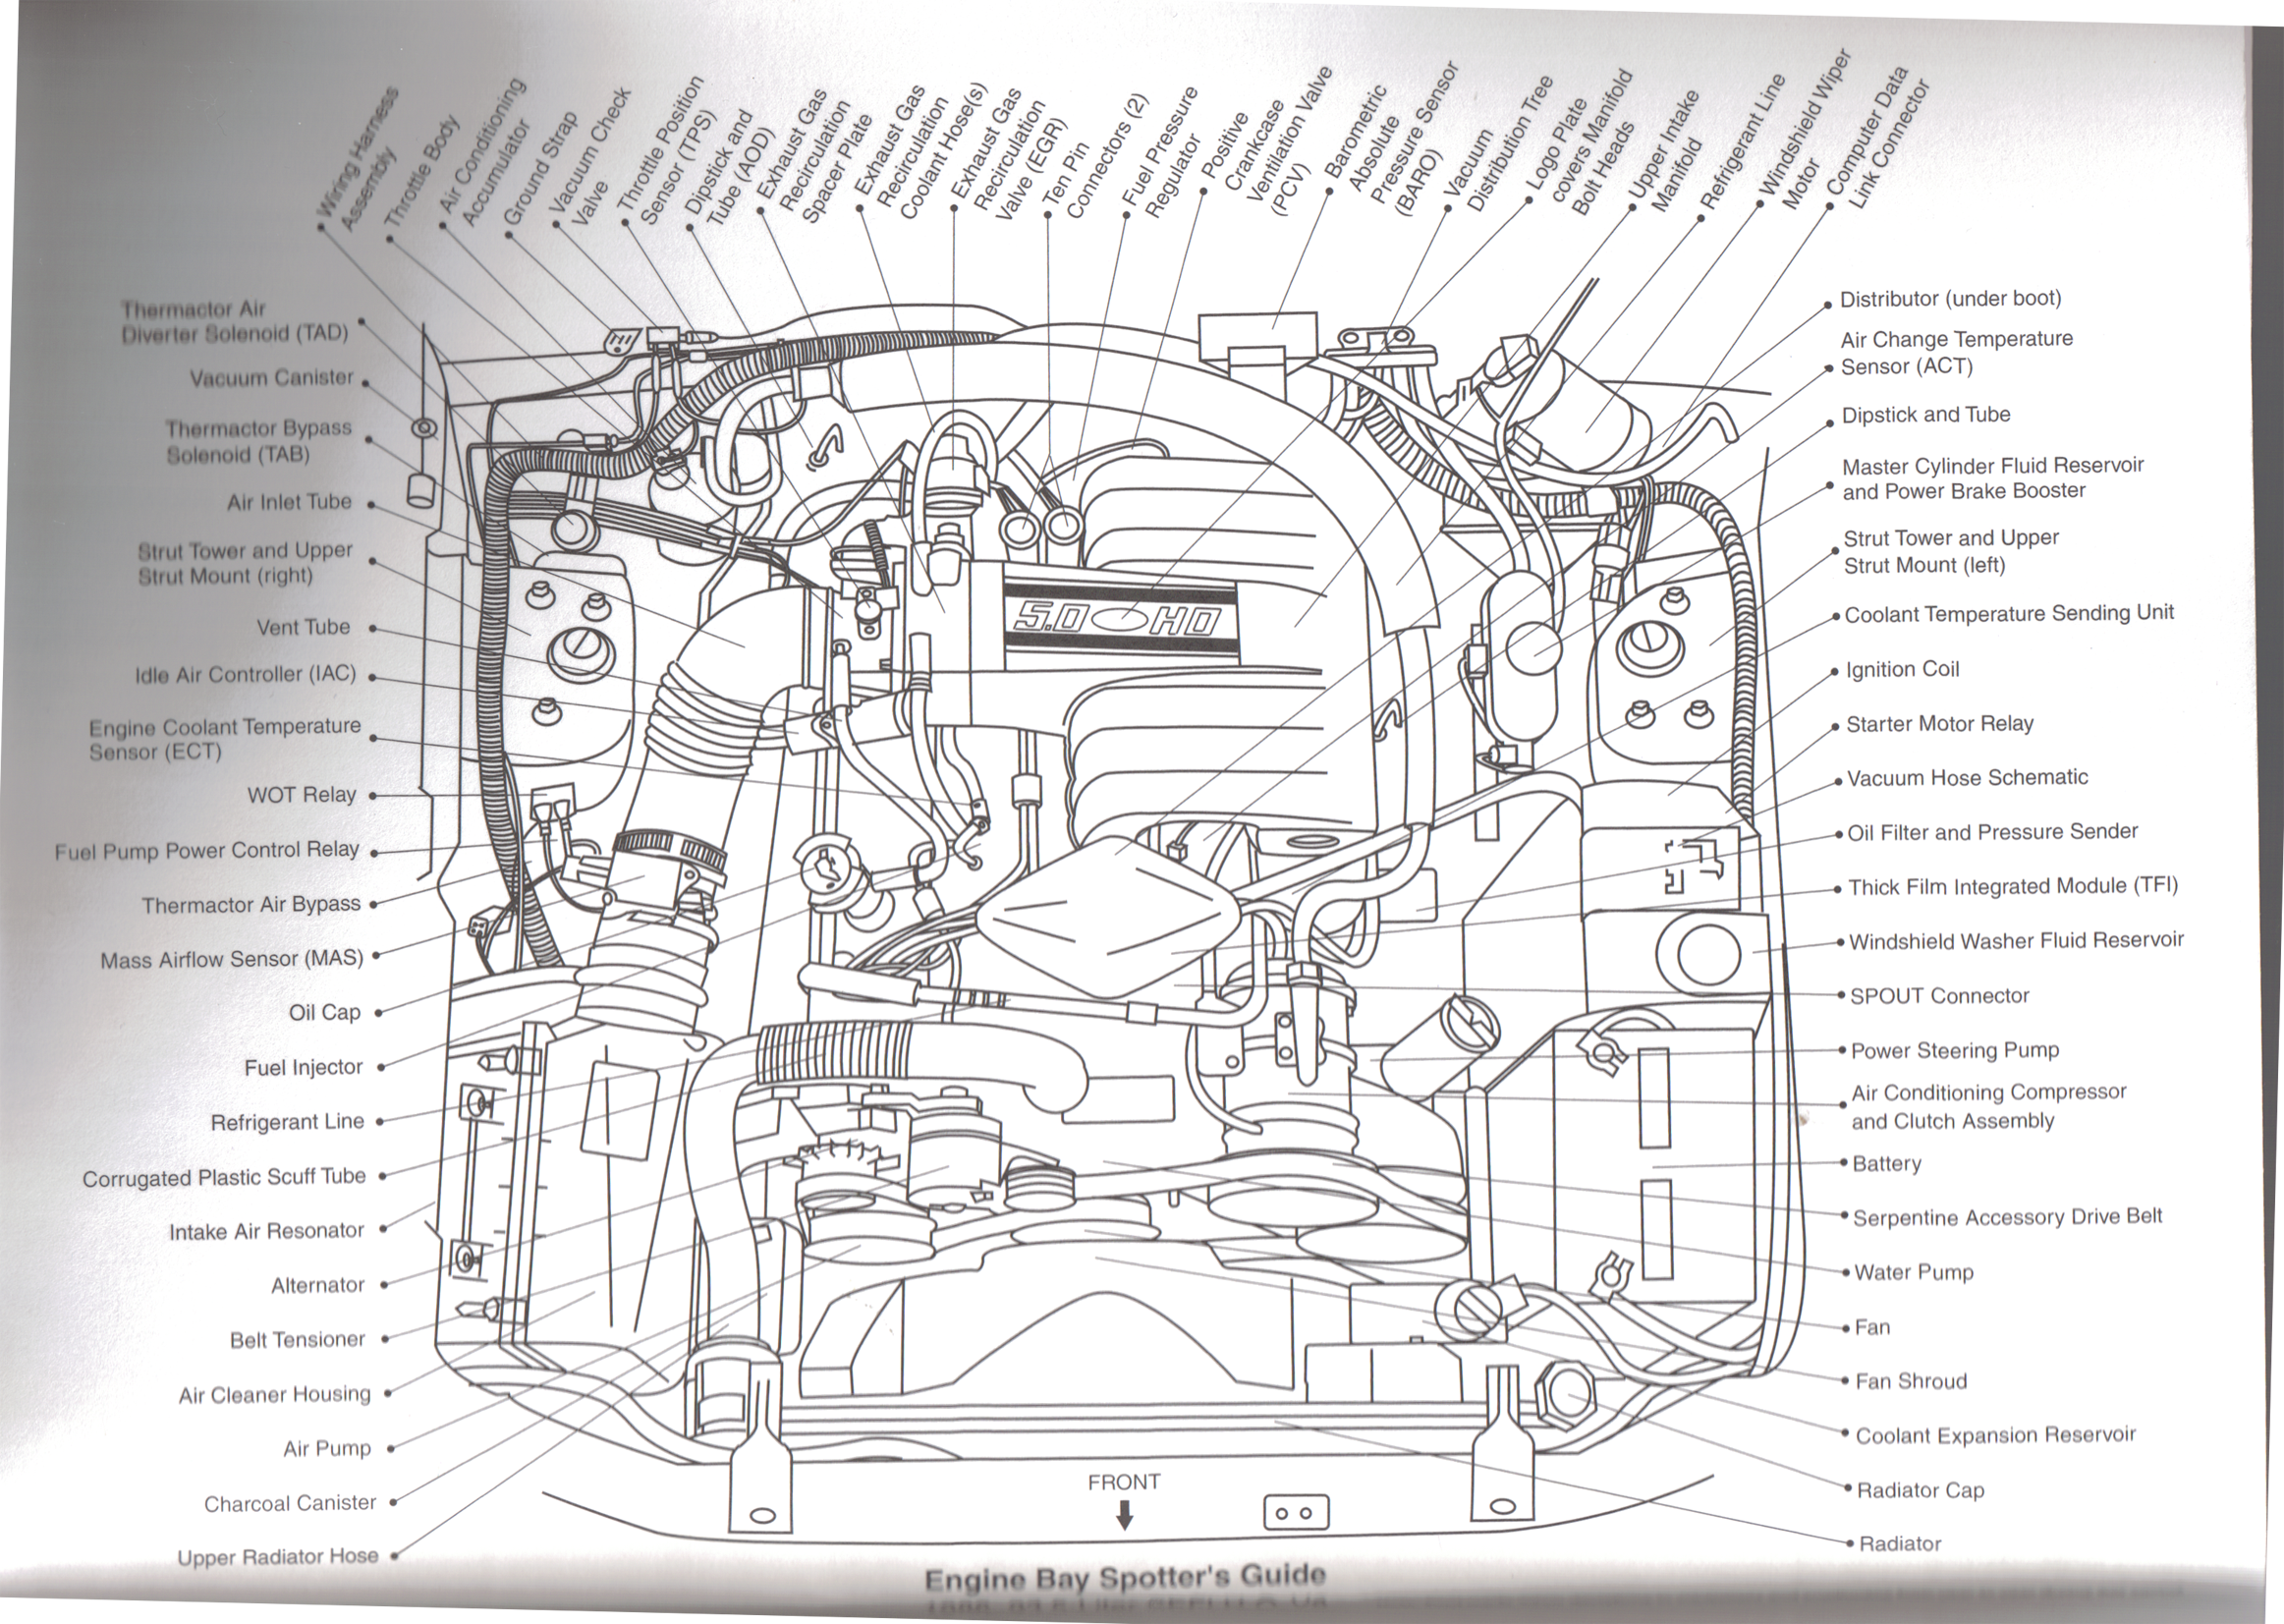 1987 1993 foxbody 5.0 sefi v8 engine part diagram everything you need to know about 1979 1993 foxbody mustangs